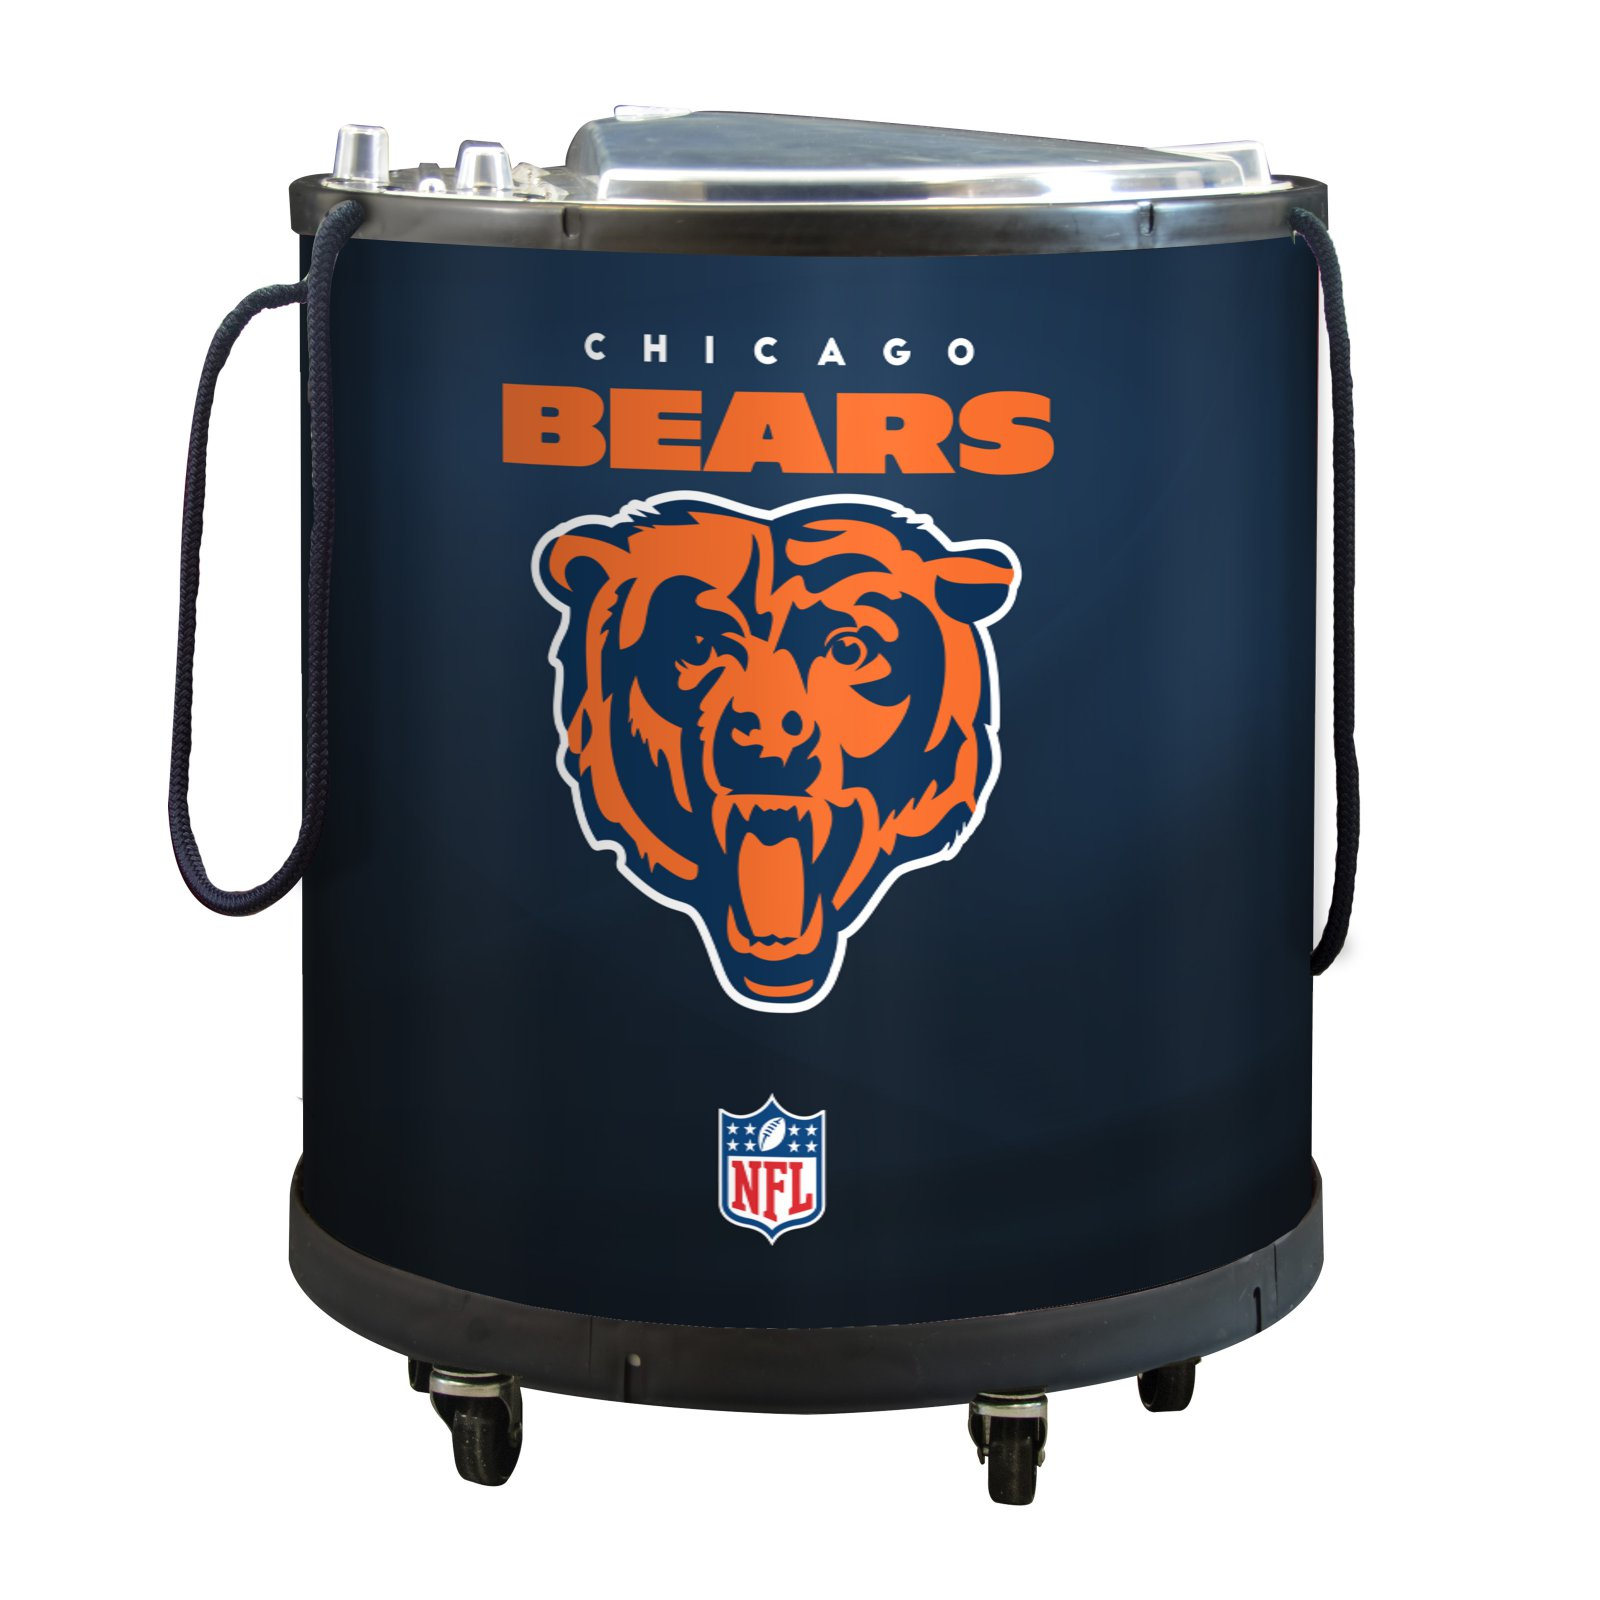 NFL Mini Ice Barrel Cooler, Chicago Bears